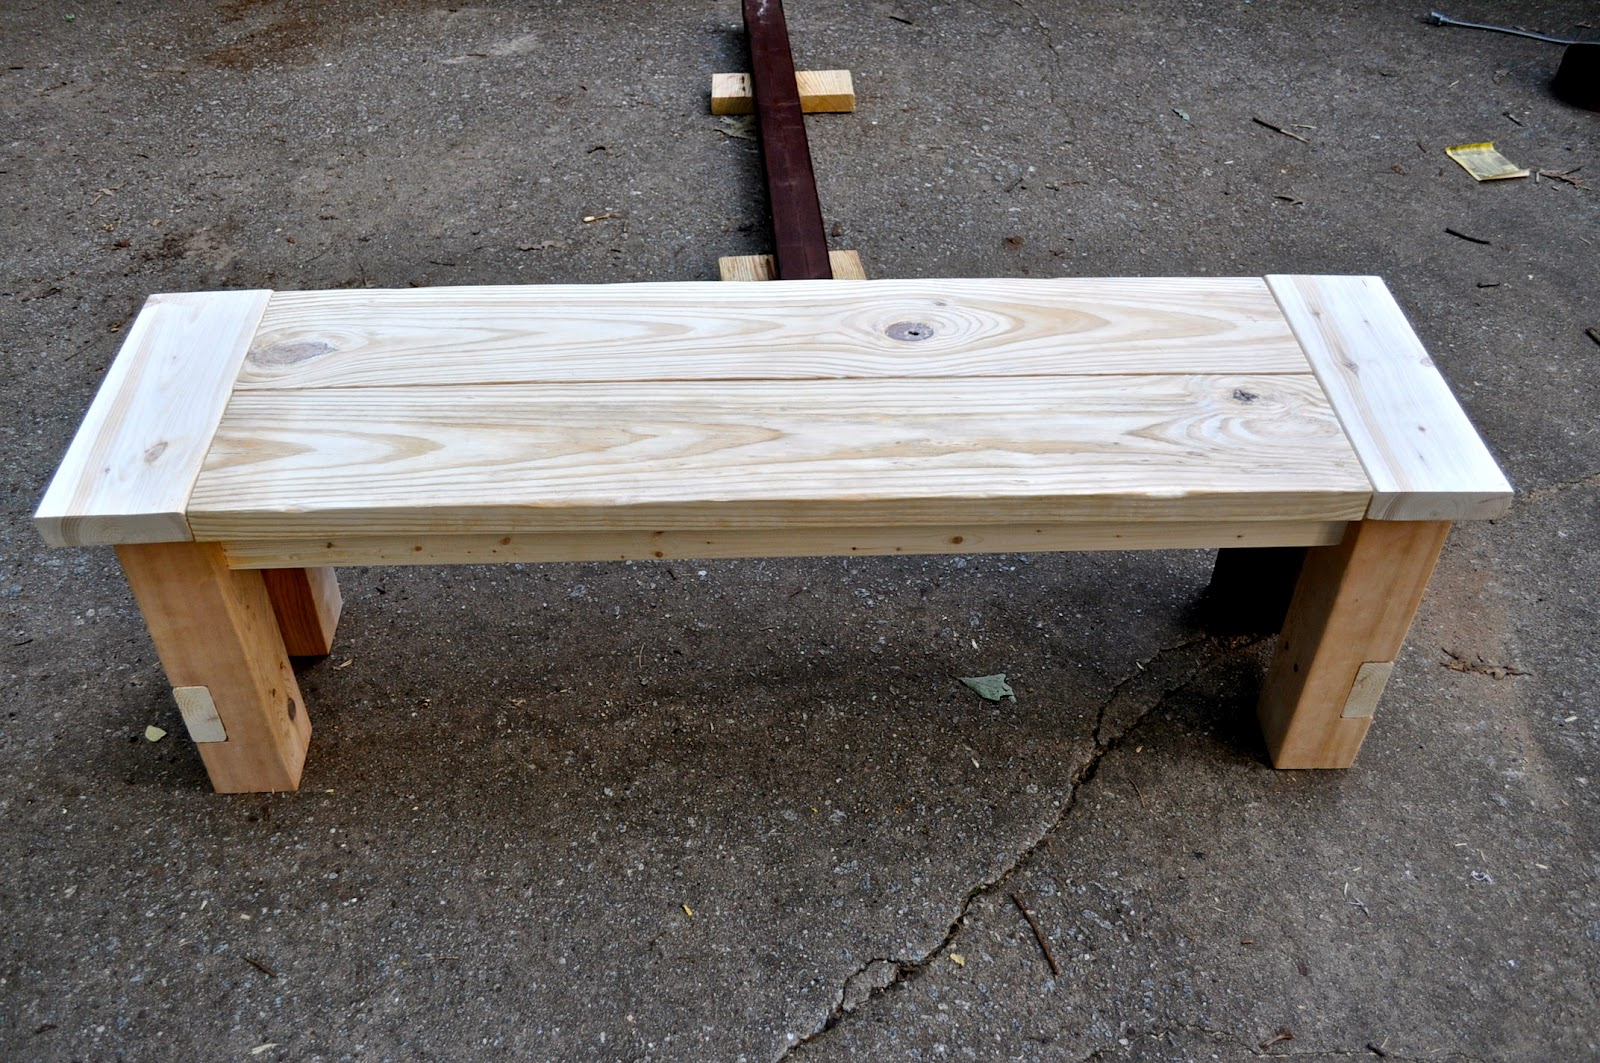 Dare to dream diy farmhouse bench How to build a farmhouse